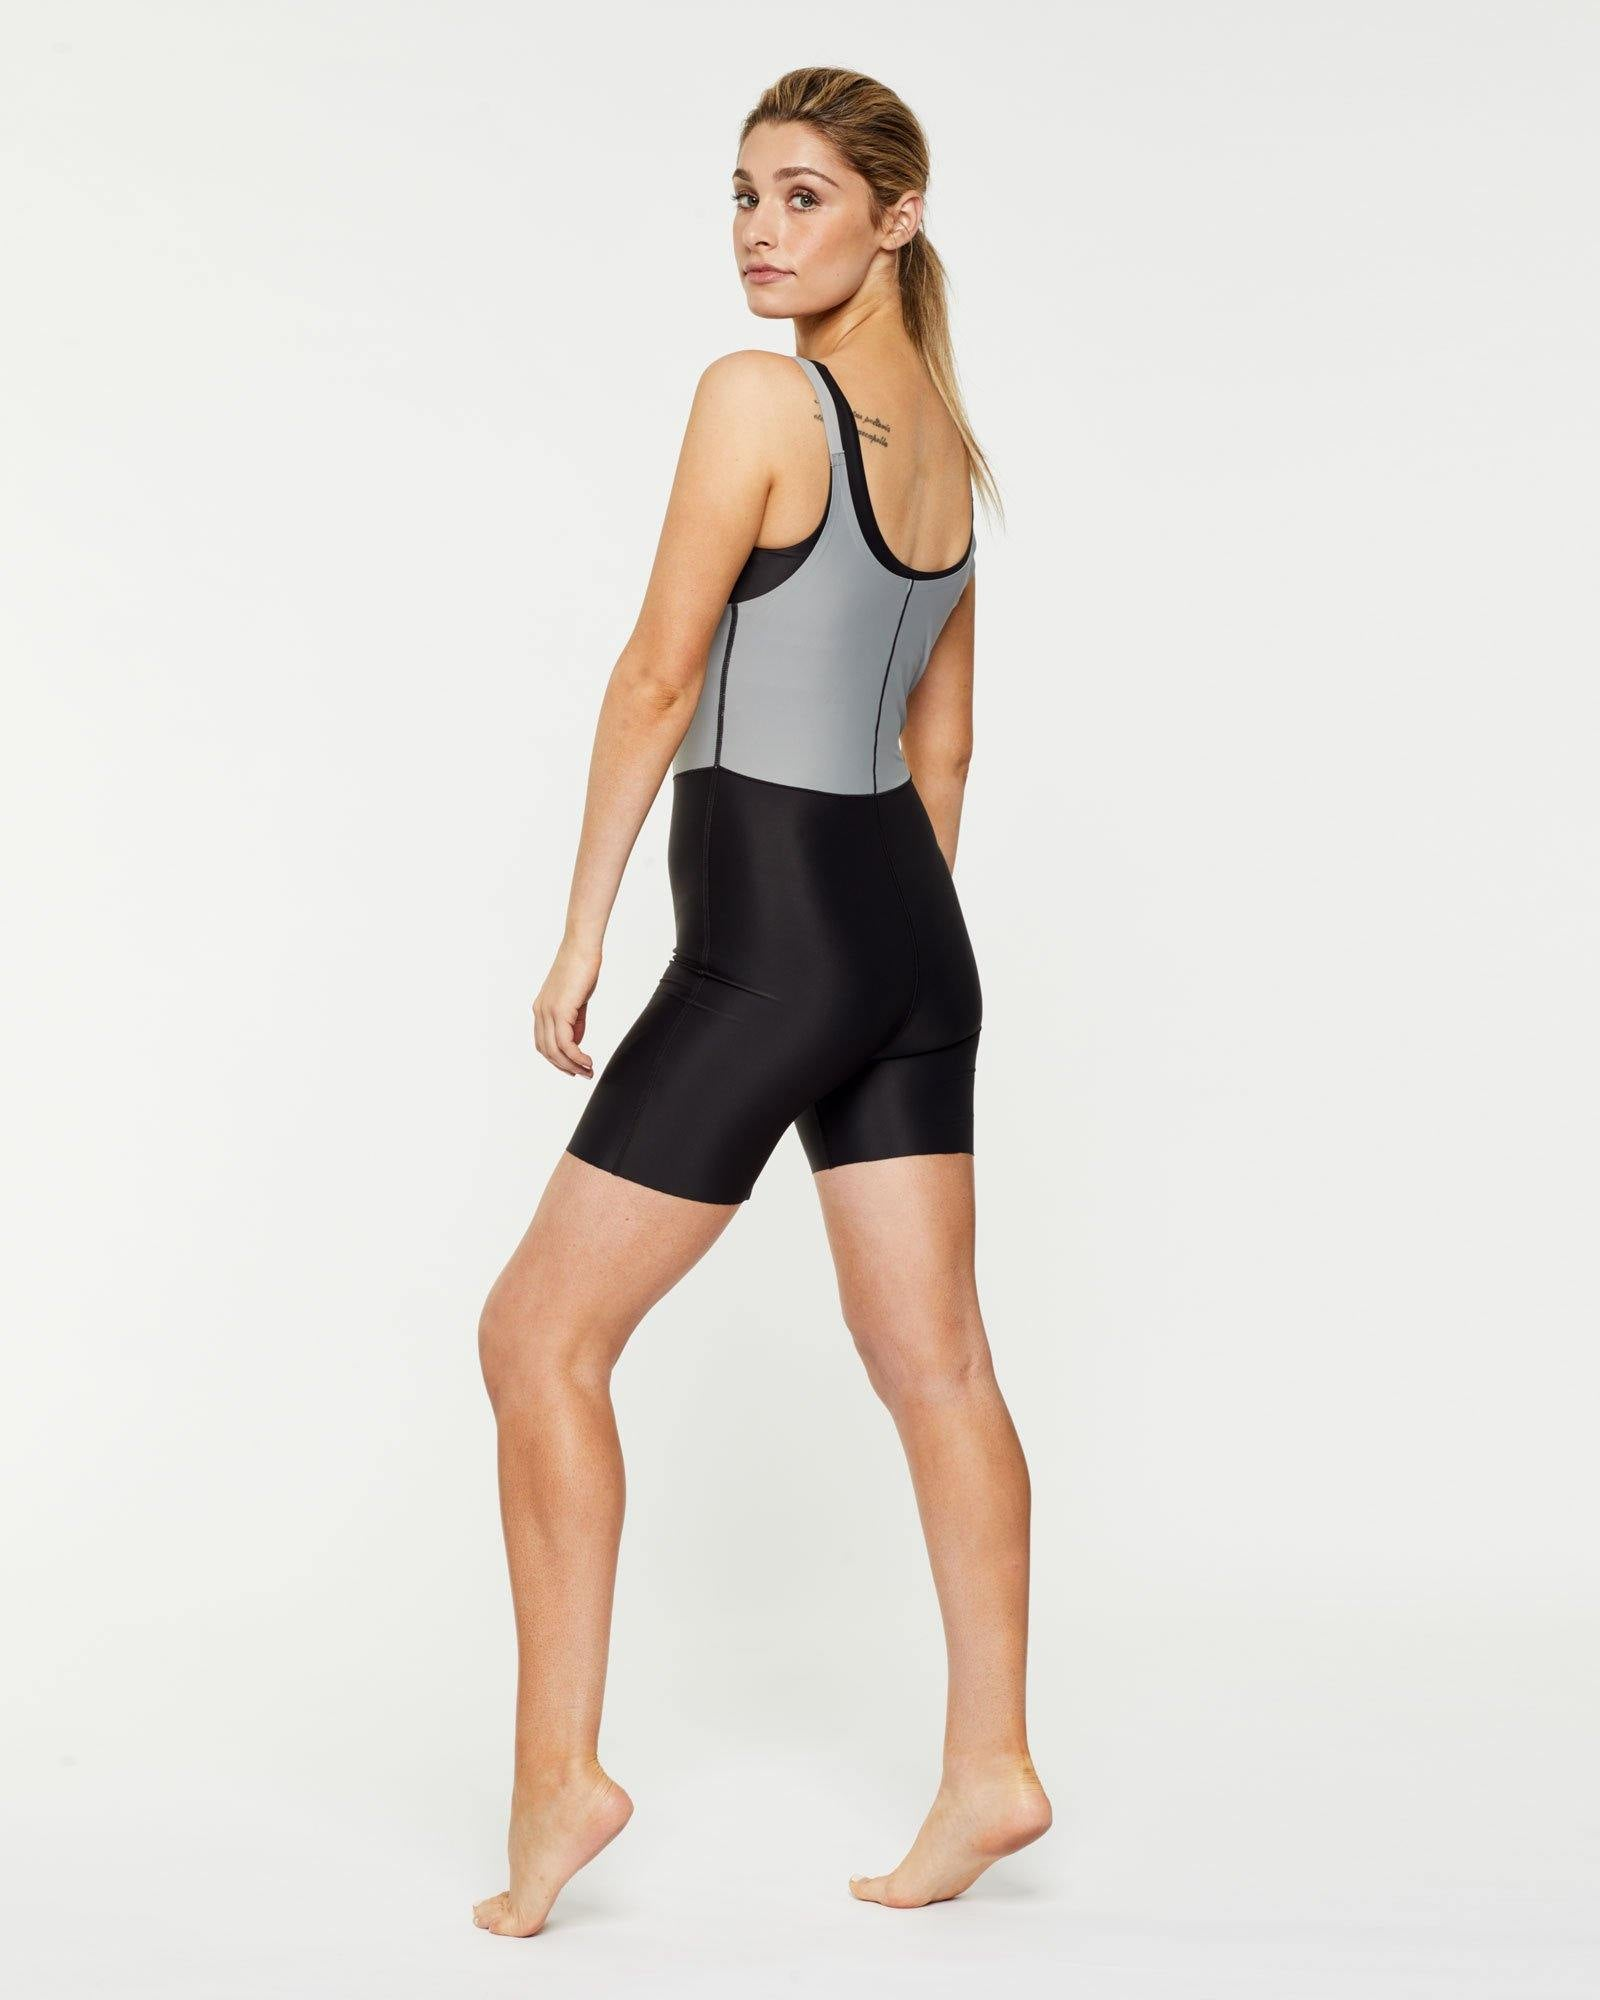 Steely RECTUS SHORT BODYSUIT worn low front over Pectoralis active top and high back, side view